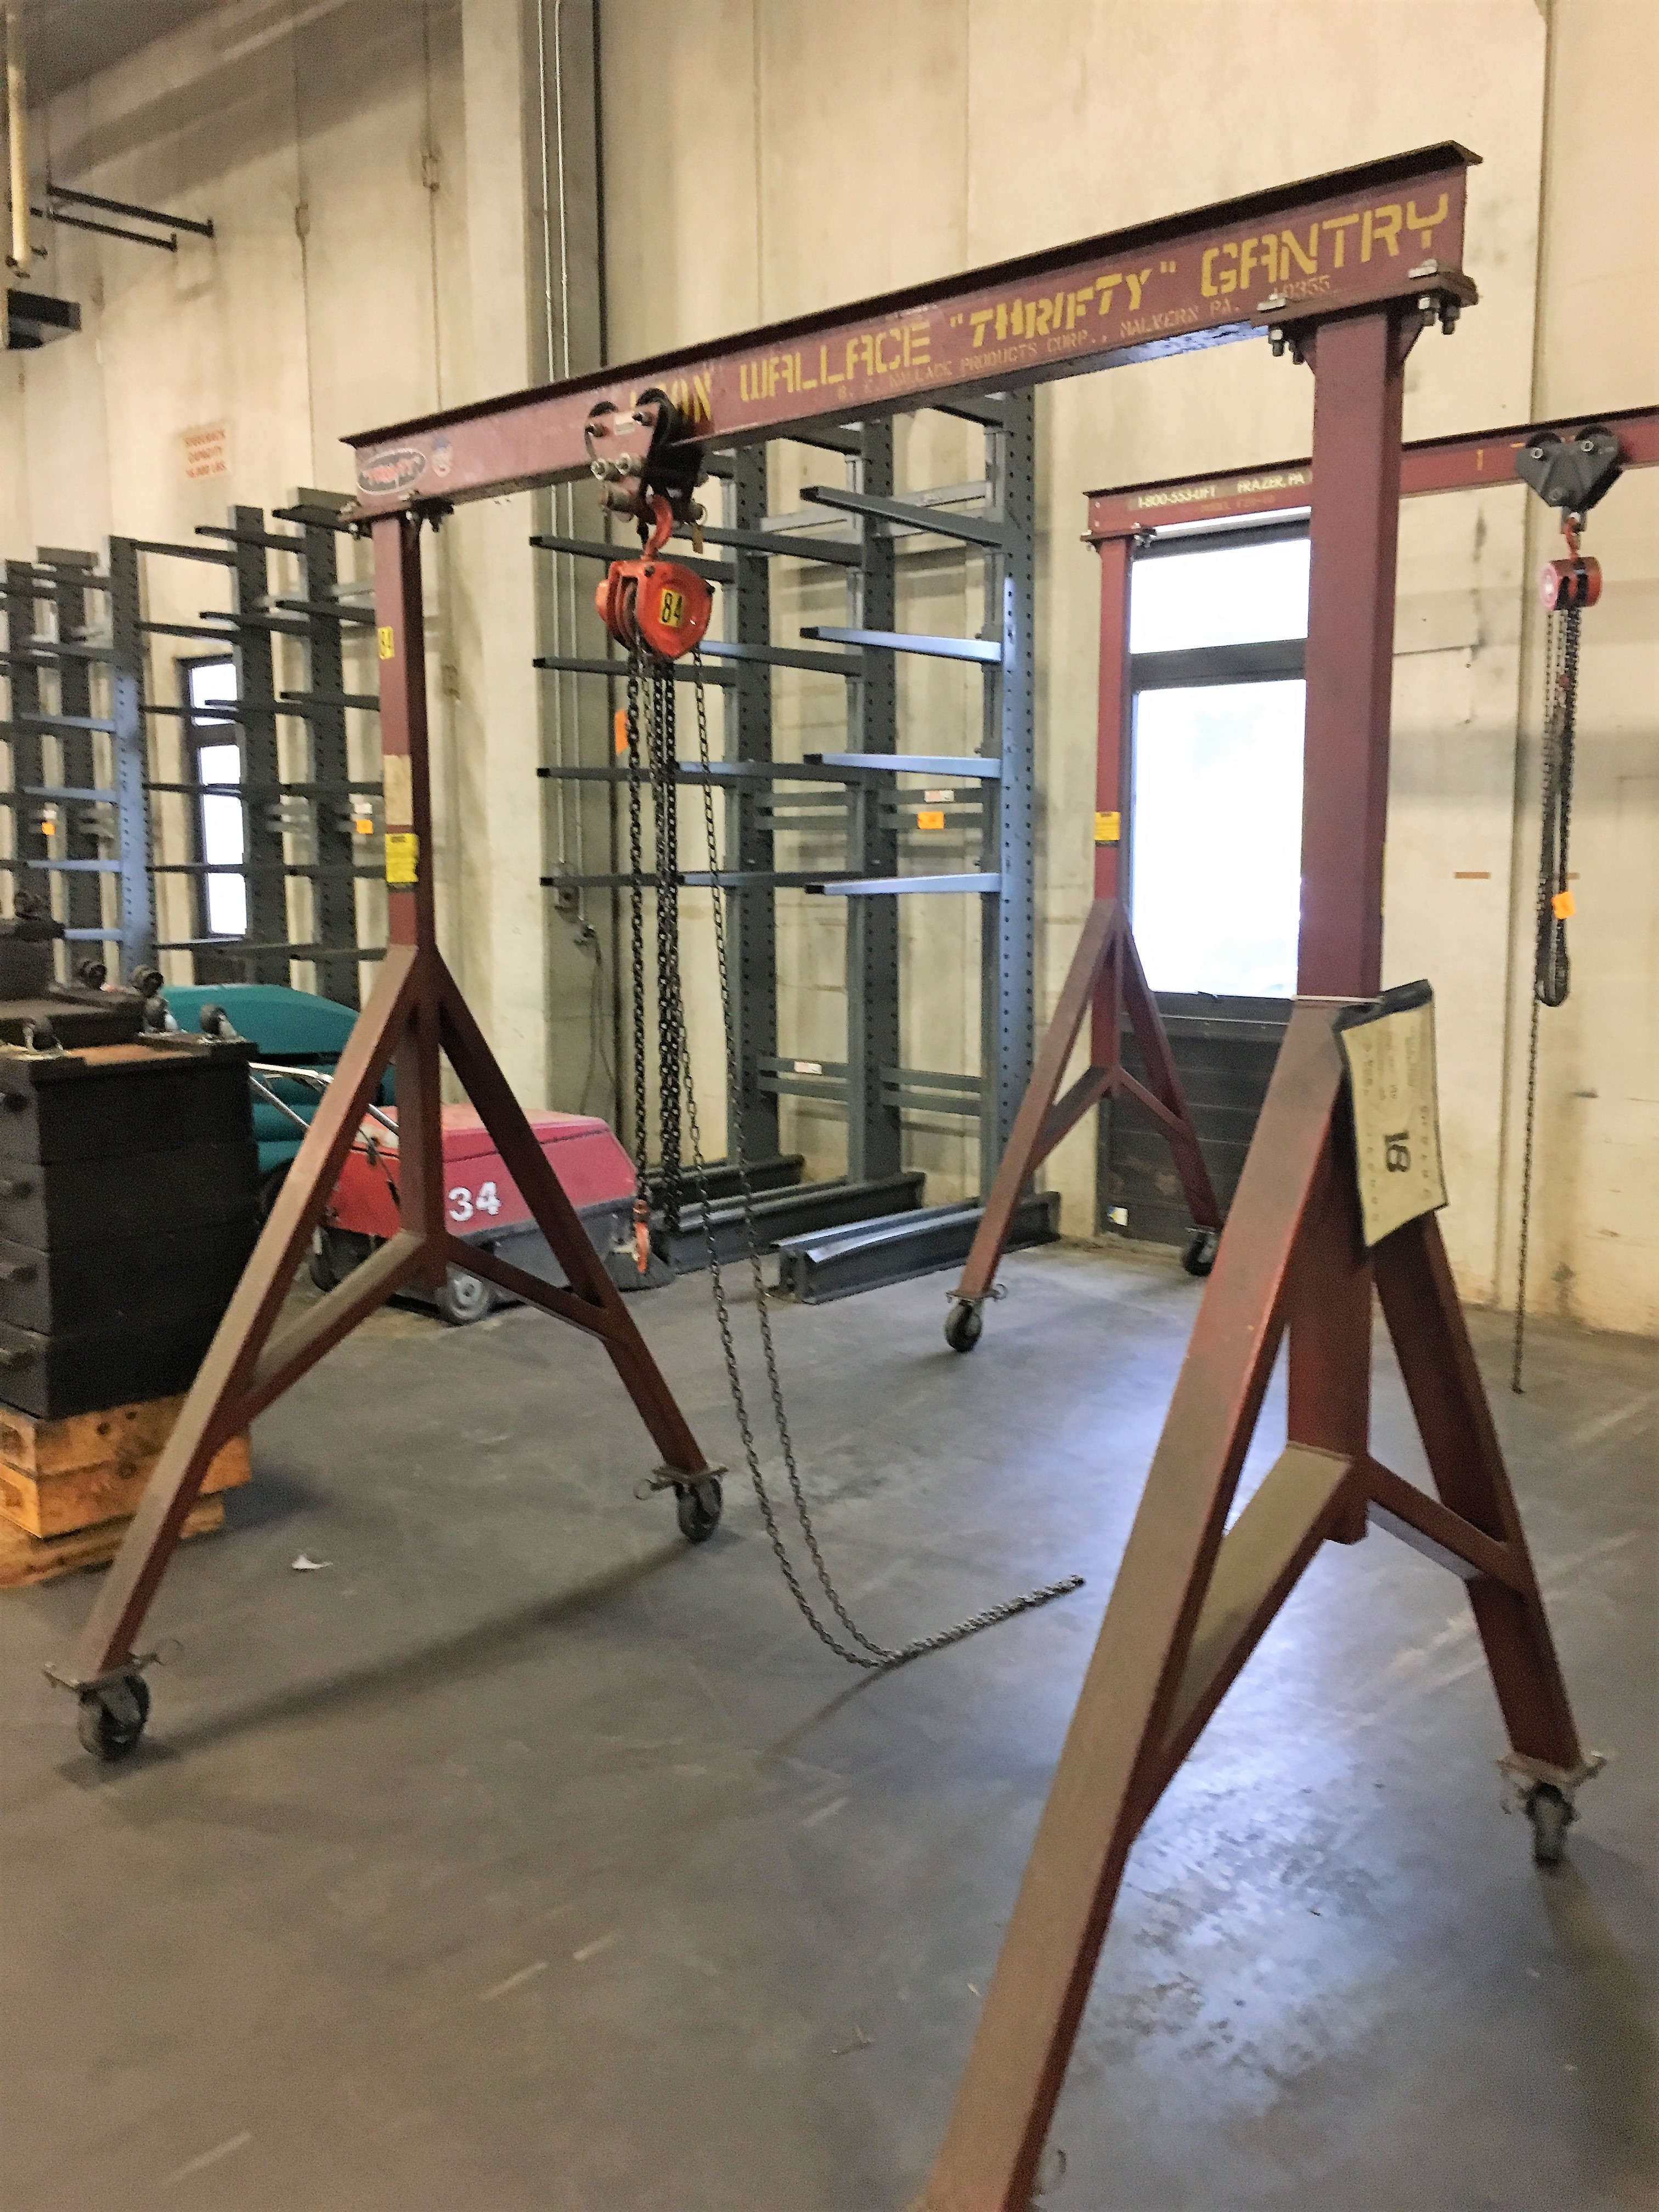 Lot 47 - Wallace MF-29-8 1-Ton Capacity Portable Gantry Crane with 1 Ton Chainfall, 6-1/2' Span, 8' Height